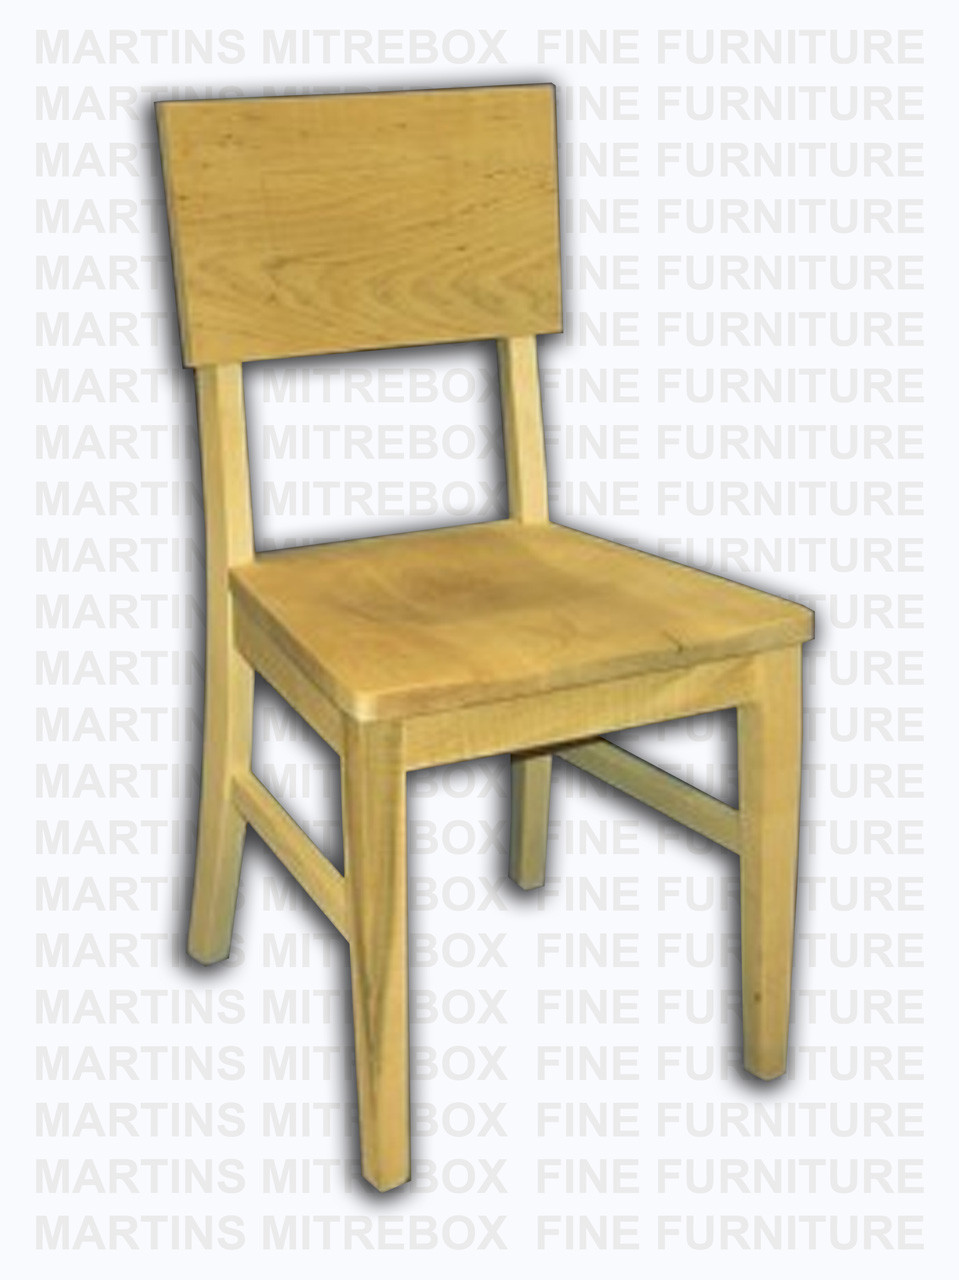 Hand Made Mennonite Furniture Wood Solid Maple Side Dining Chairs